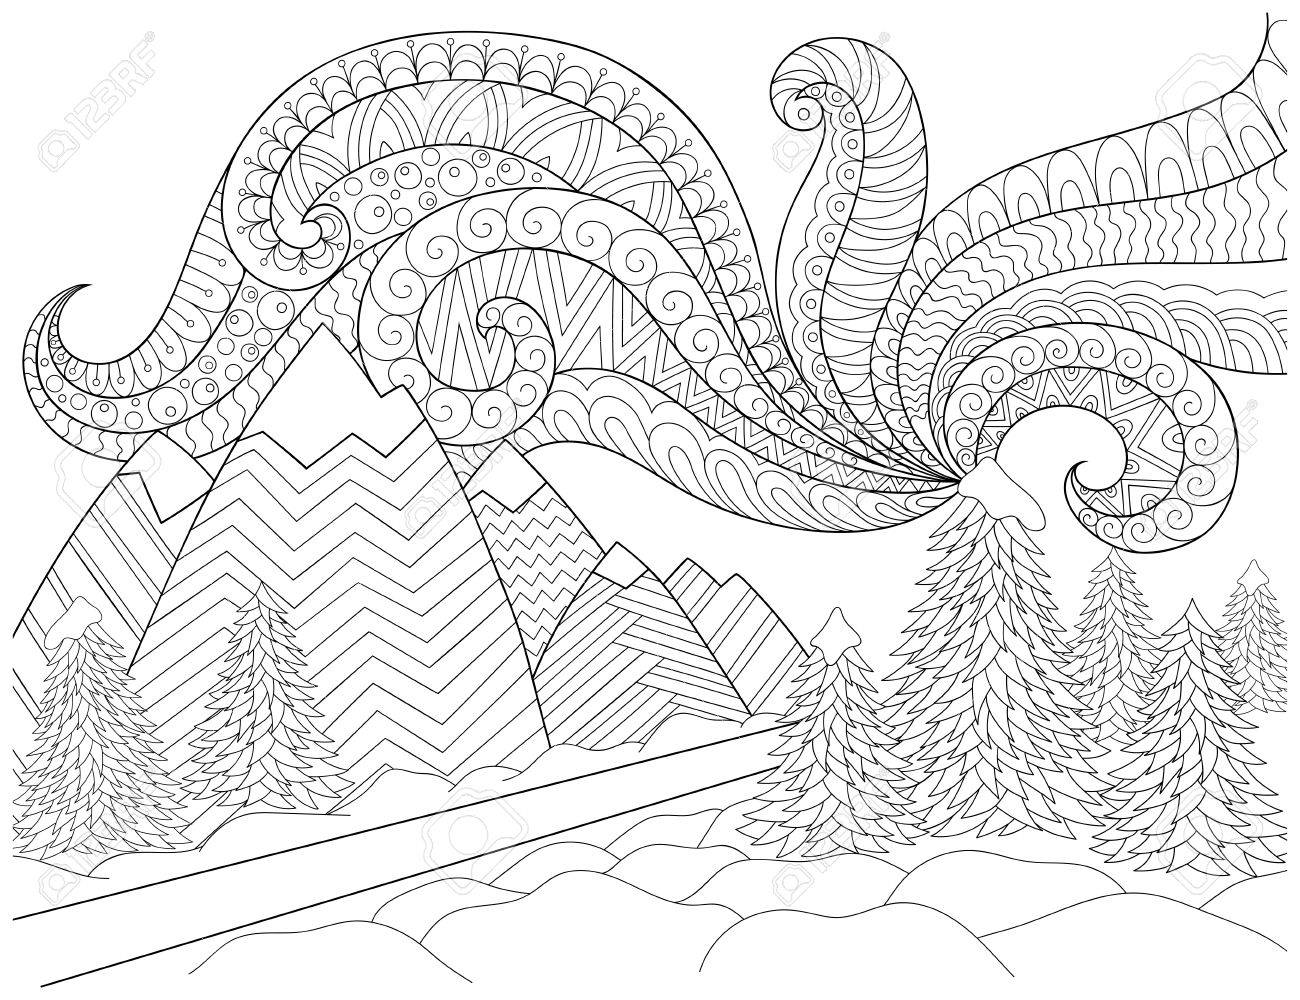 Doodle pattern in black and white. Winter Landscape - road, trees, mountains, northern lights, snow drifts. Landscape Pattern for coloring book. Winter mood - coloring book page for children and adults. - 64346643